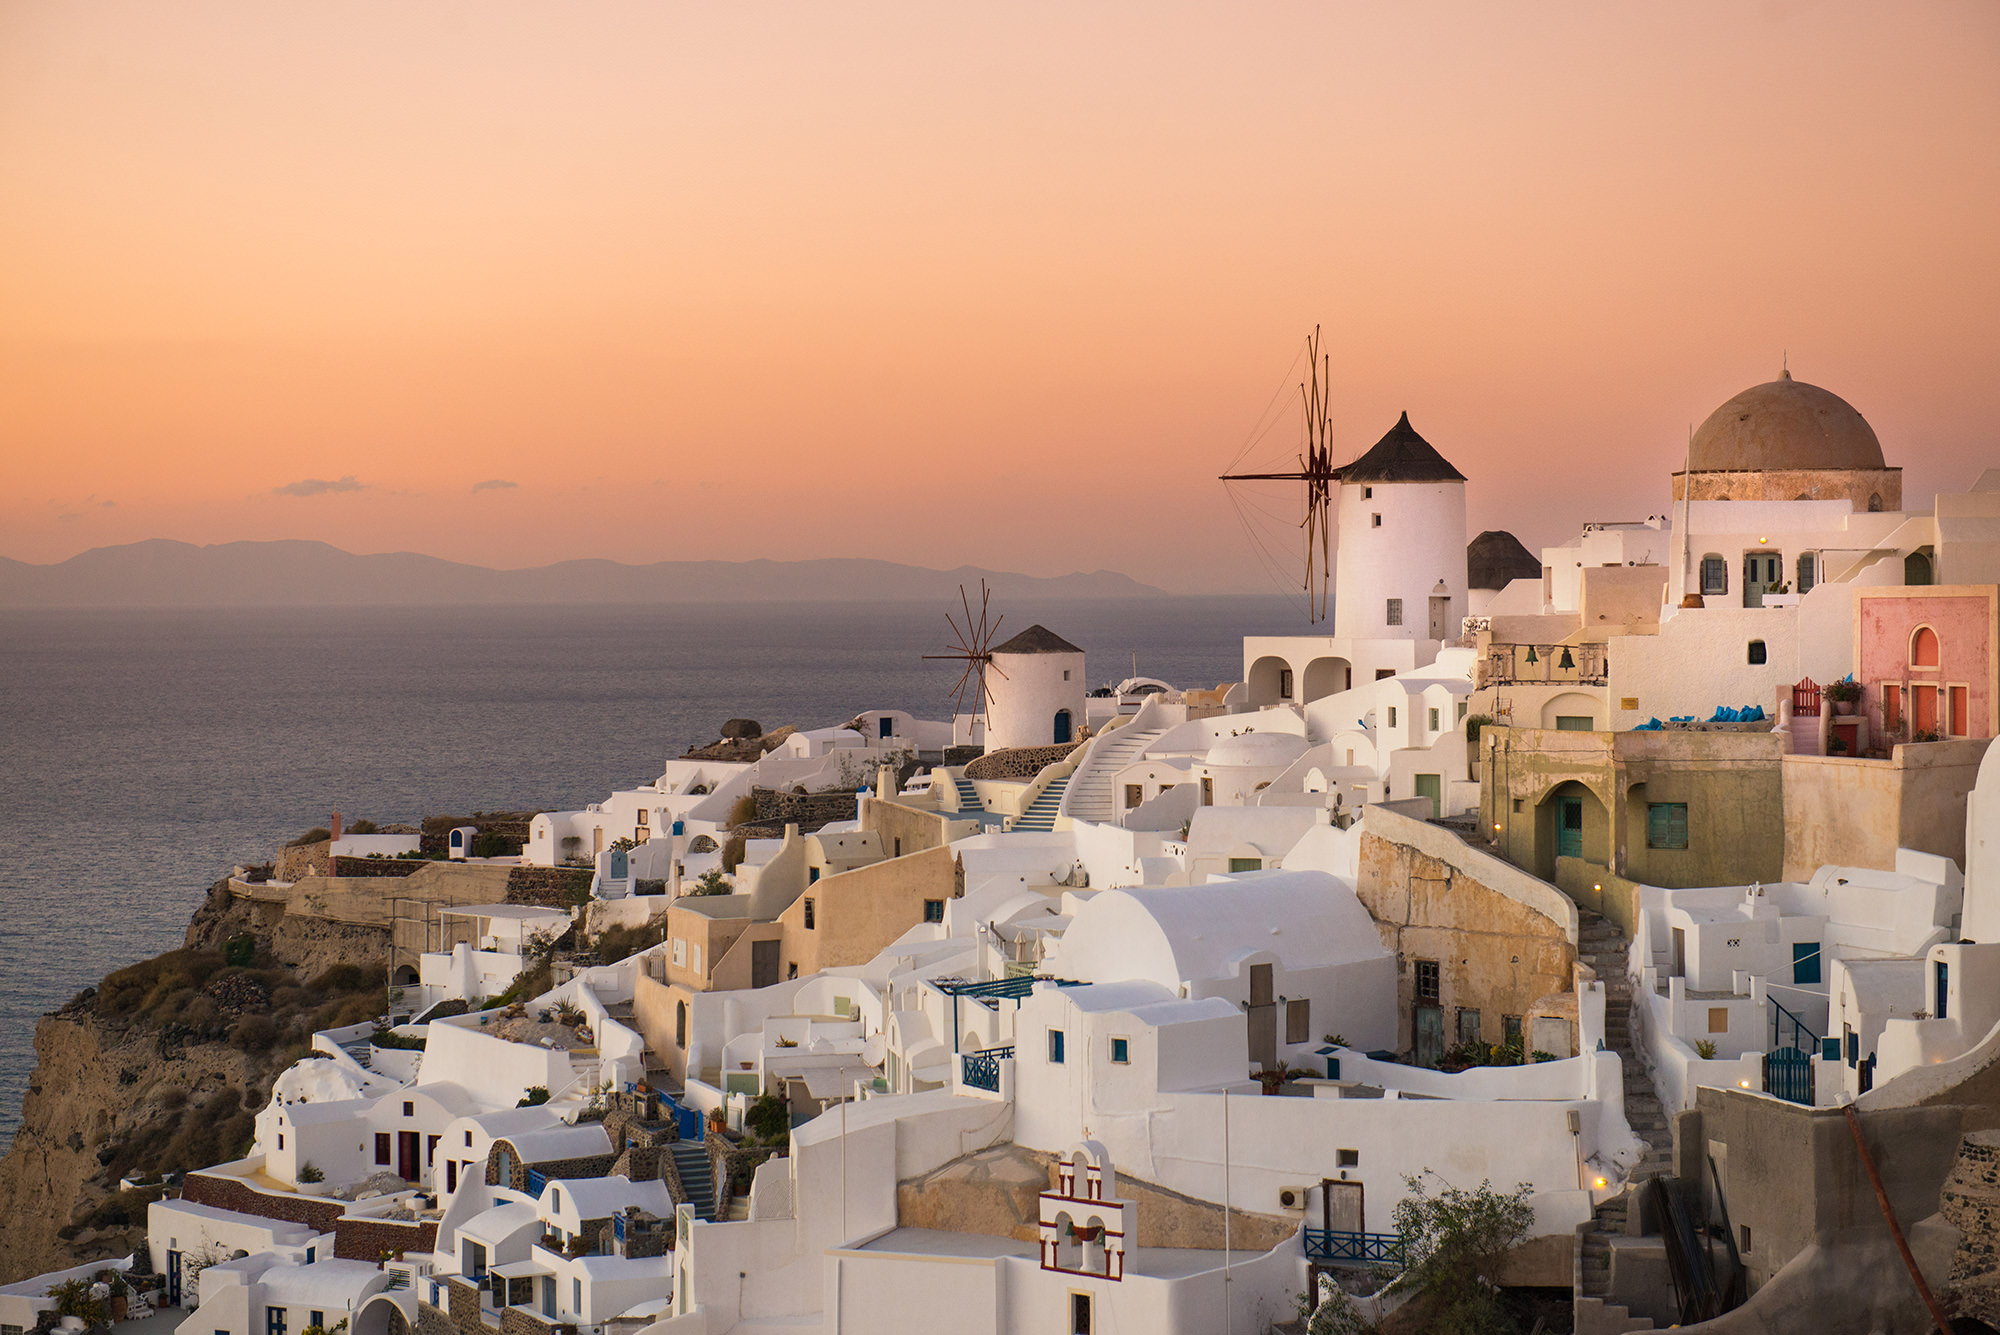 A beautiful sunset over a village of white buildings in Greece above the ocean.